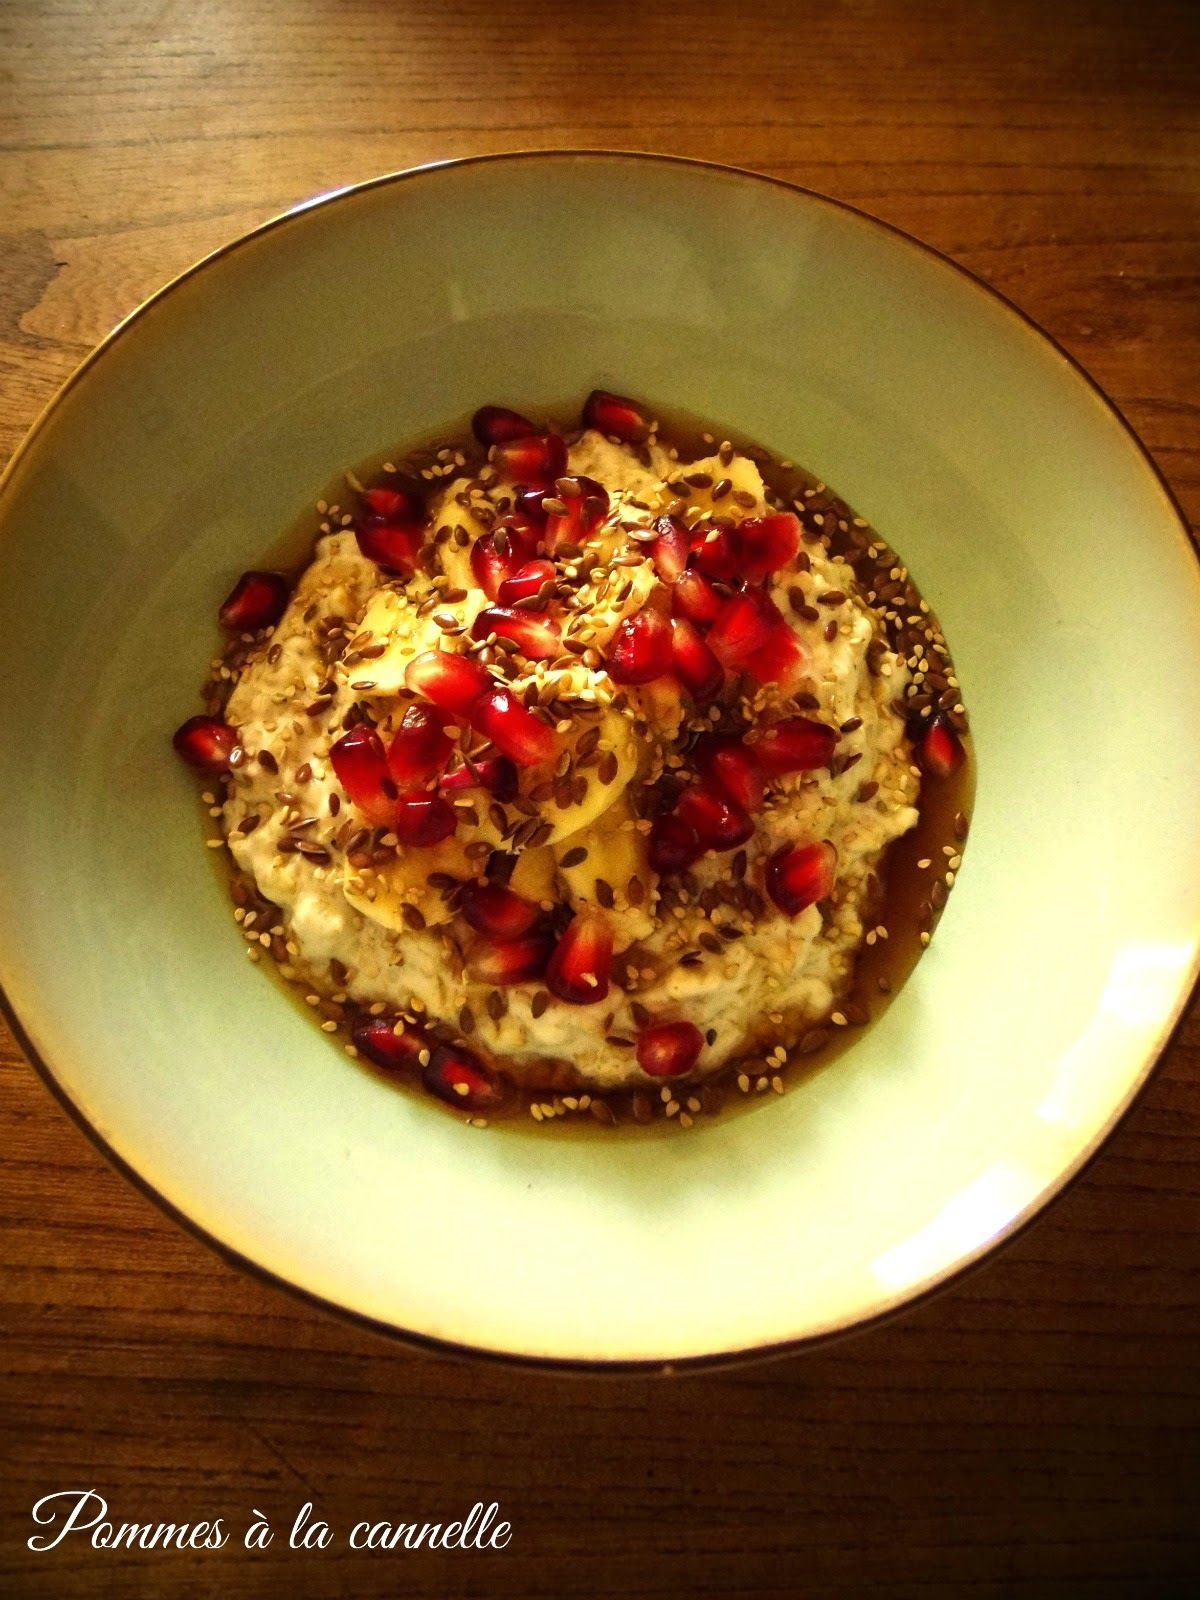 Kokosowa owsianka z bananem i granatem/Coconut porridge with banana and pomegranate